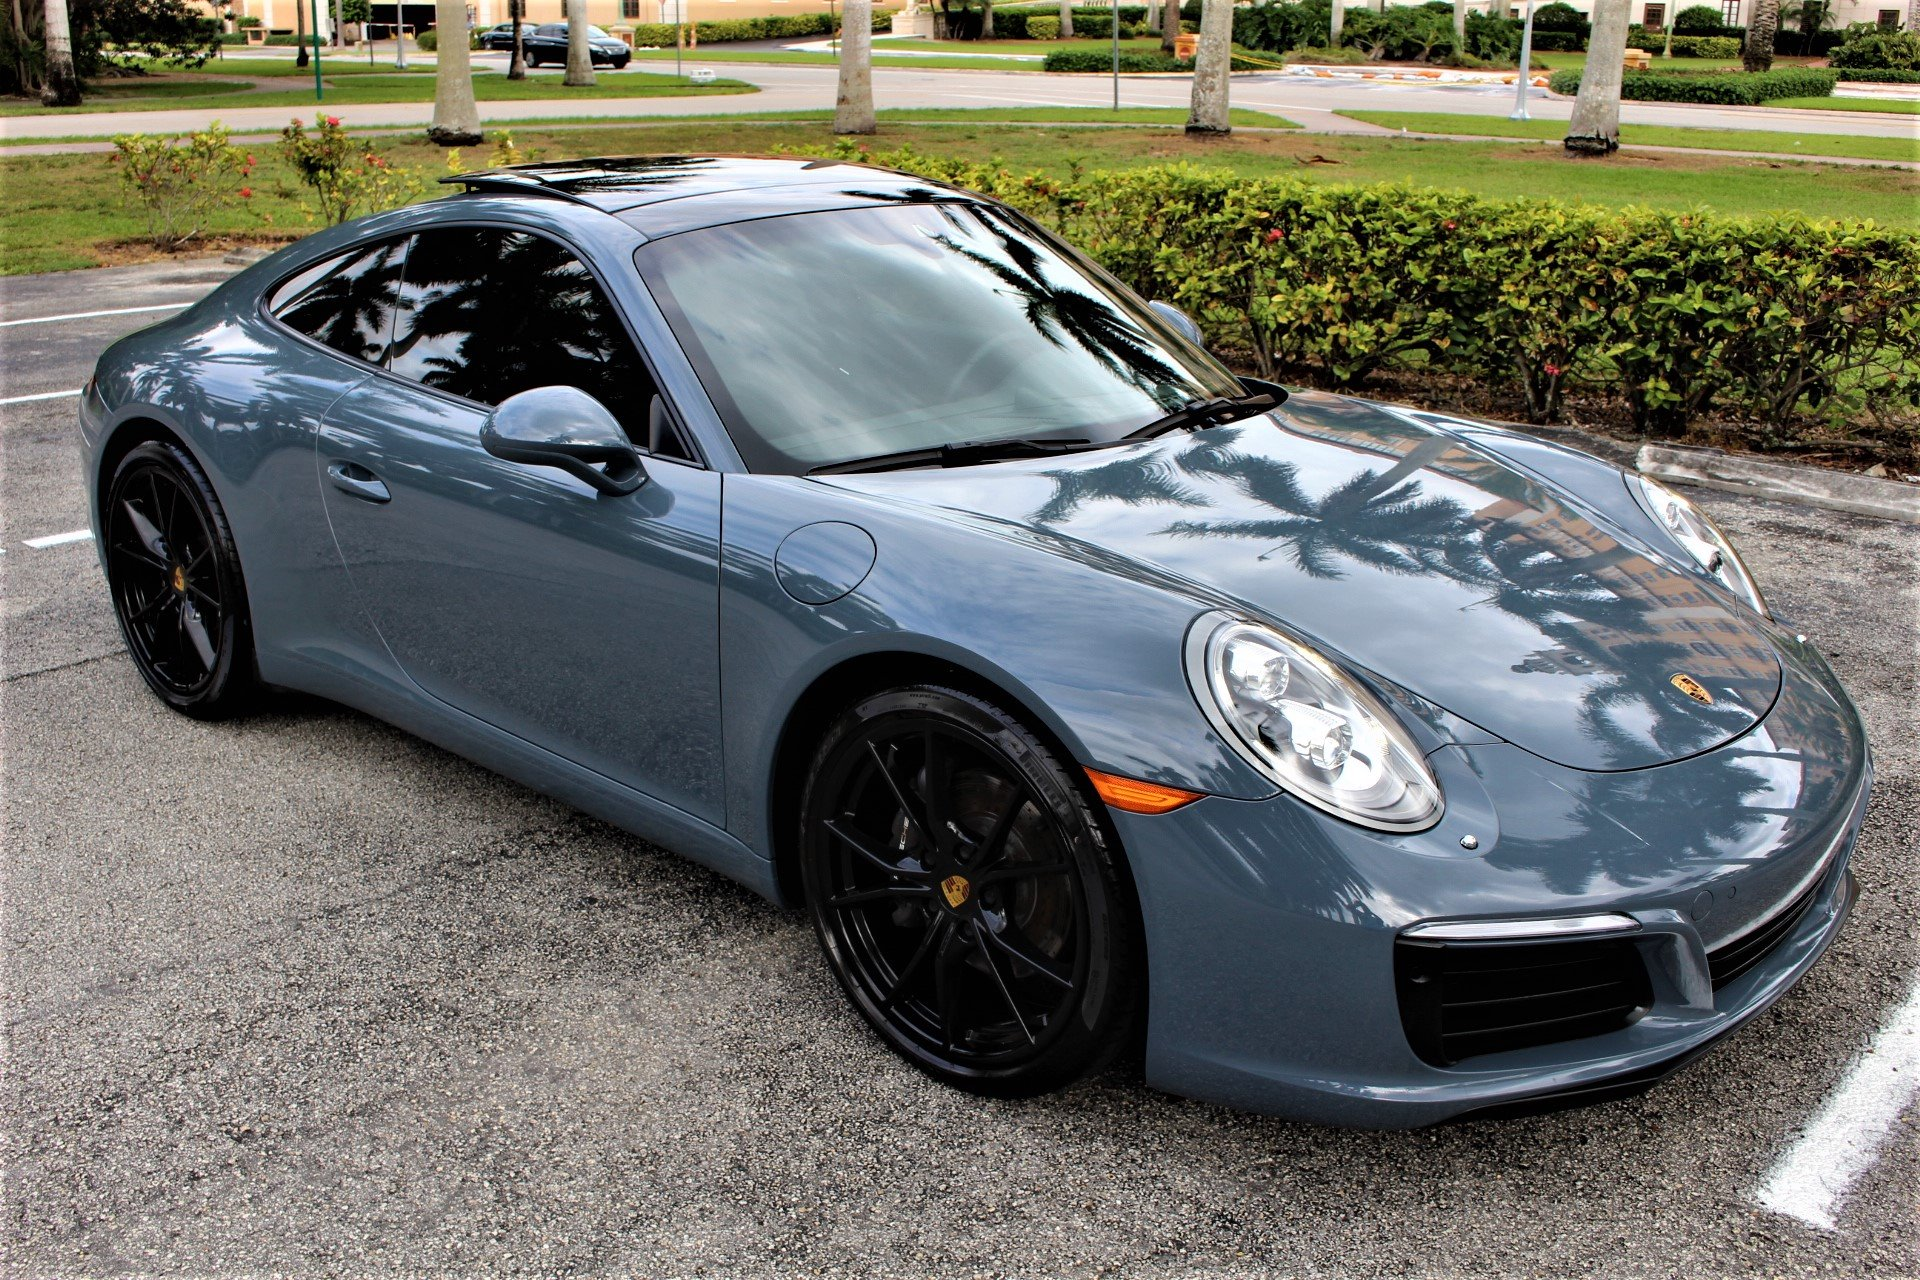 Used 2017 Porsche 911 Carrera for sale Sold at The Gables Sports Cars in Miami FL 33146 3